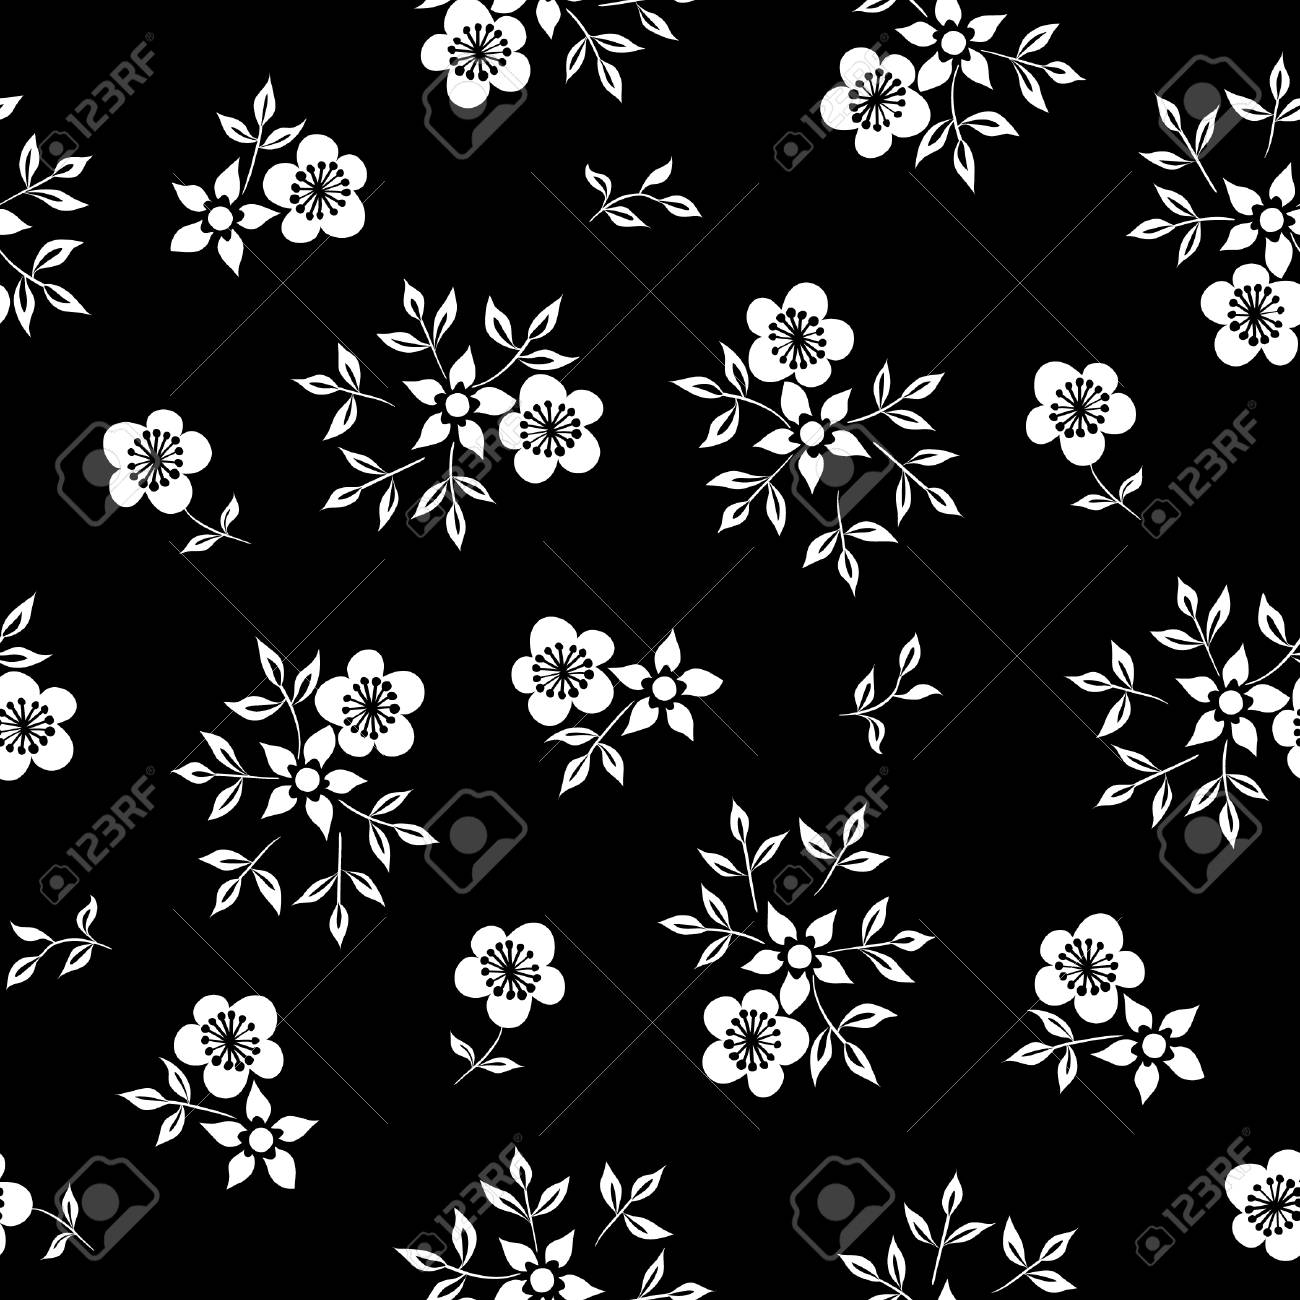 Vector Illustration Of Simple White Flowers On Black Background Royalty Free Cliparts Vectors And Stock Illustration Image 93920190